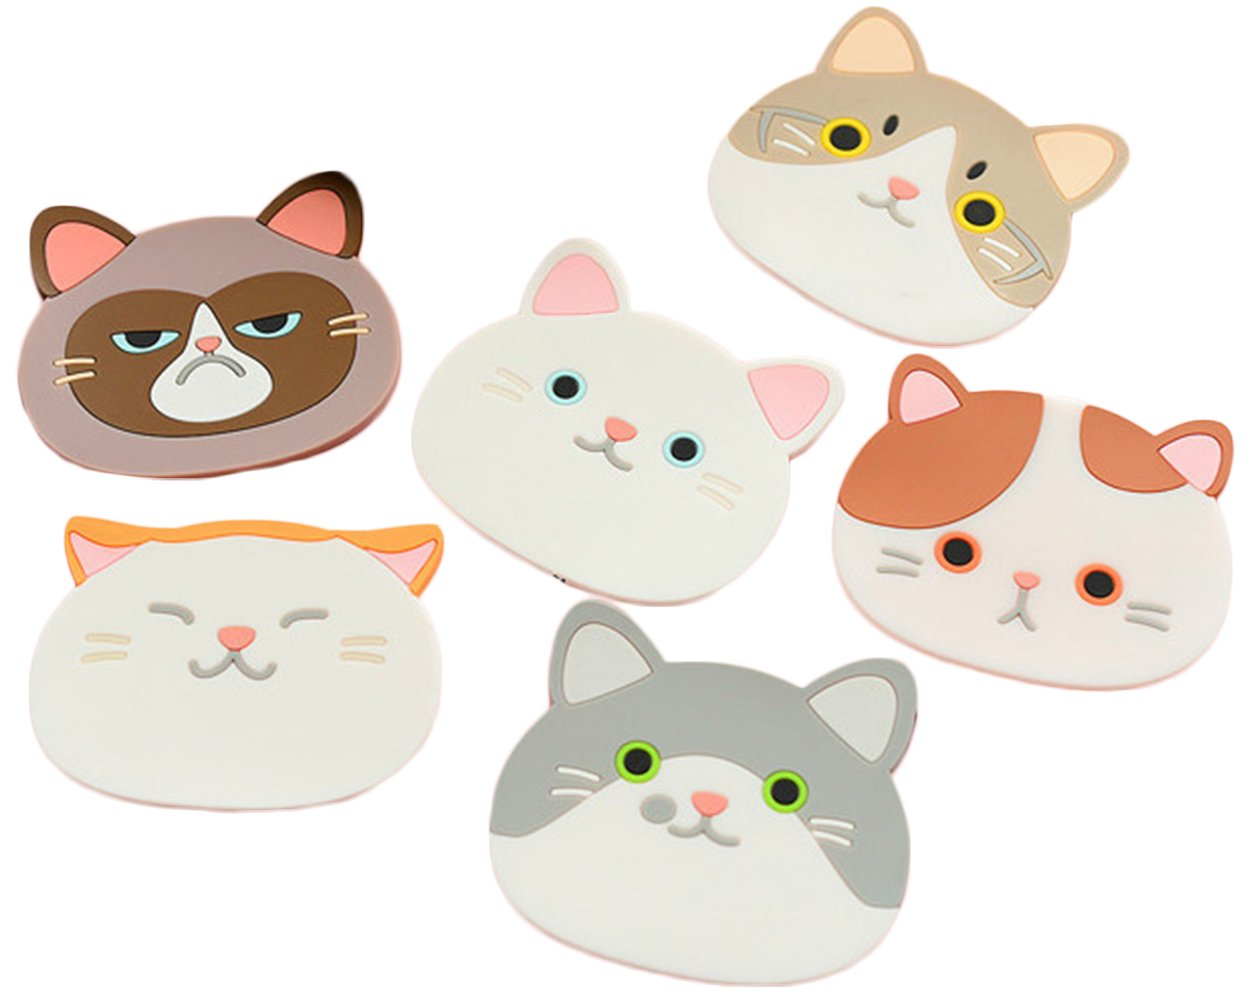 Wheelsp 6 Pack Cartoon Animal Silicone Coasters Cute Cat Cup Mat Non Slip Heat-Resistance Coaster For Wine,Glass,Tea-Best Housewarming Beverage,Drink